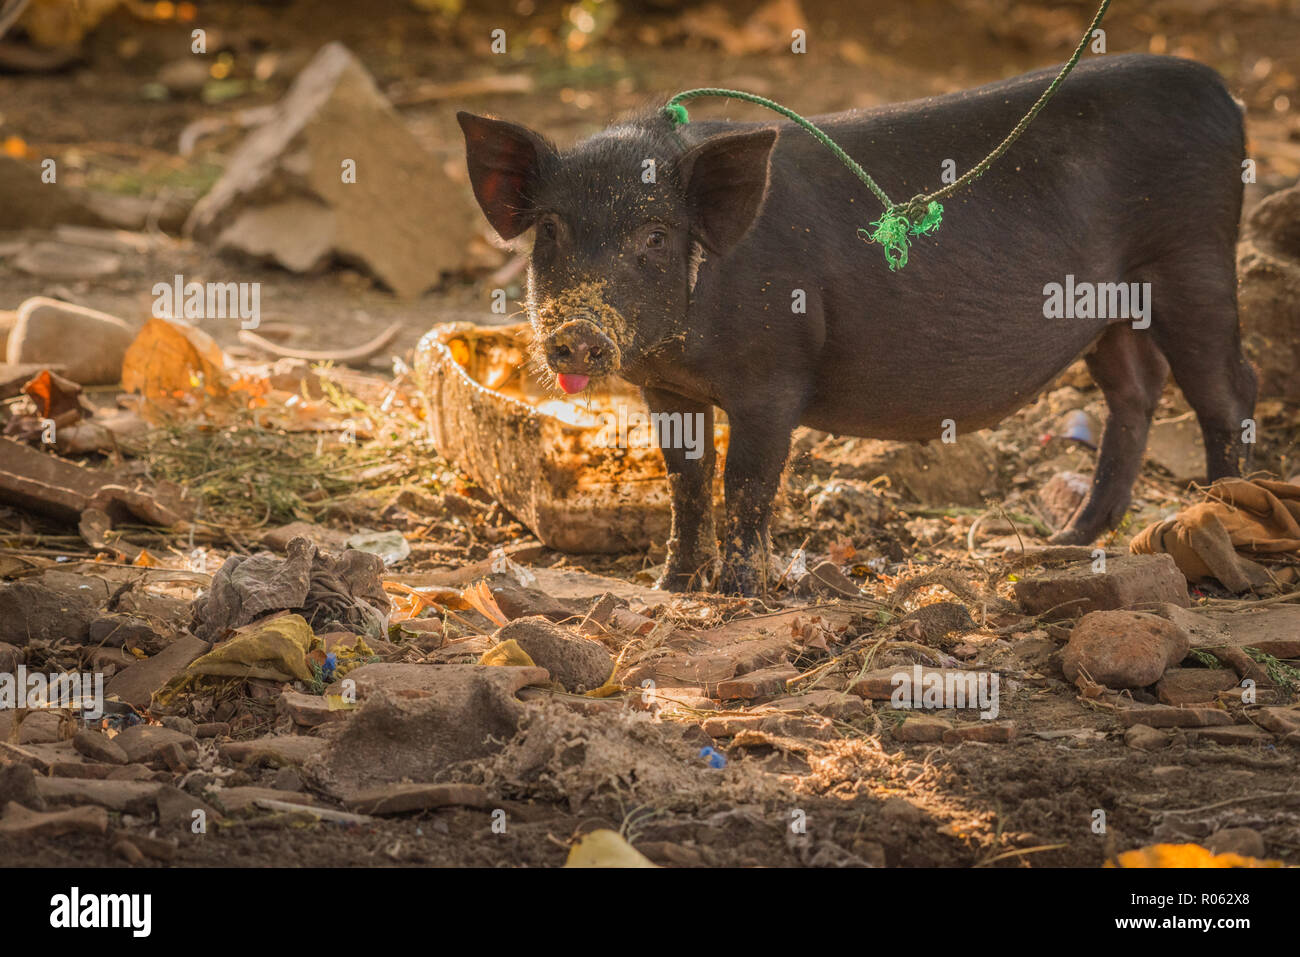 Cute piglet eating porridge for breakfast looking up with tongue sticking out - Stock Image